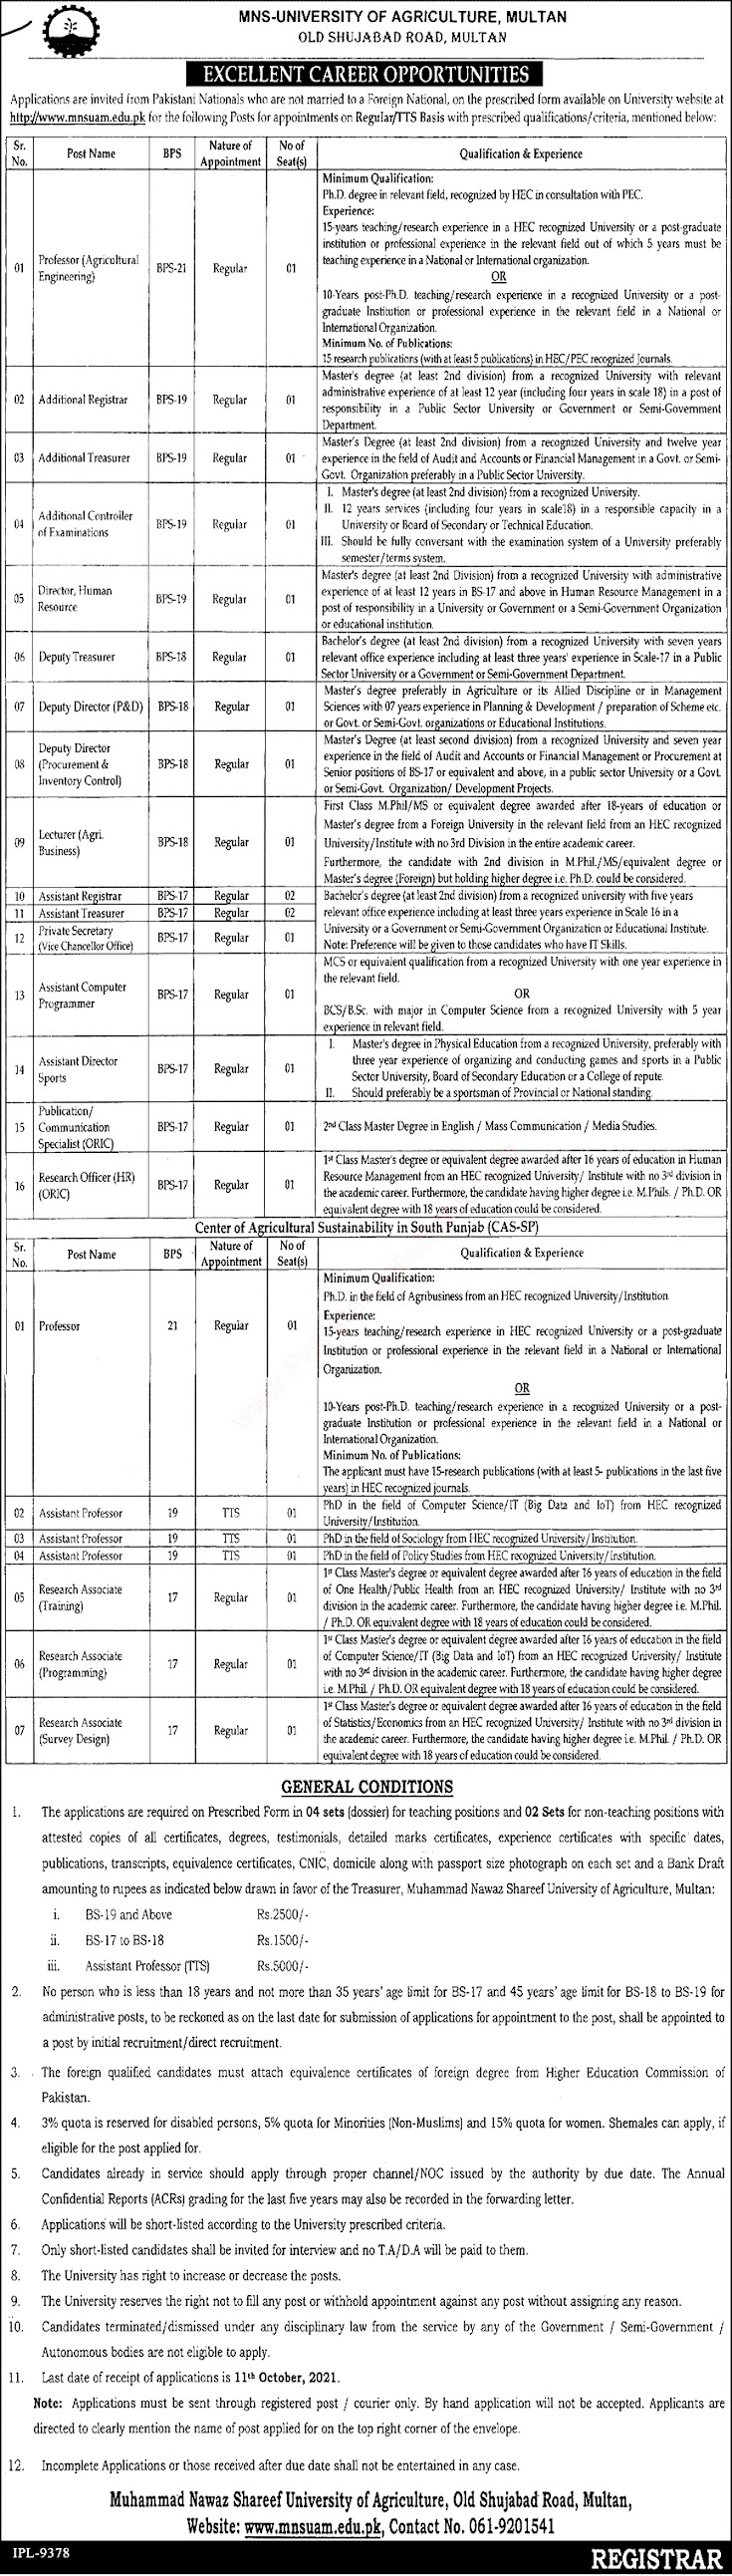 MNS University of Agriculture Multan Latest Jobs September 2021 Download Application Form